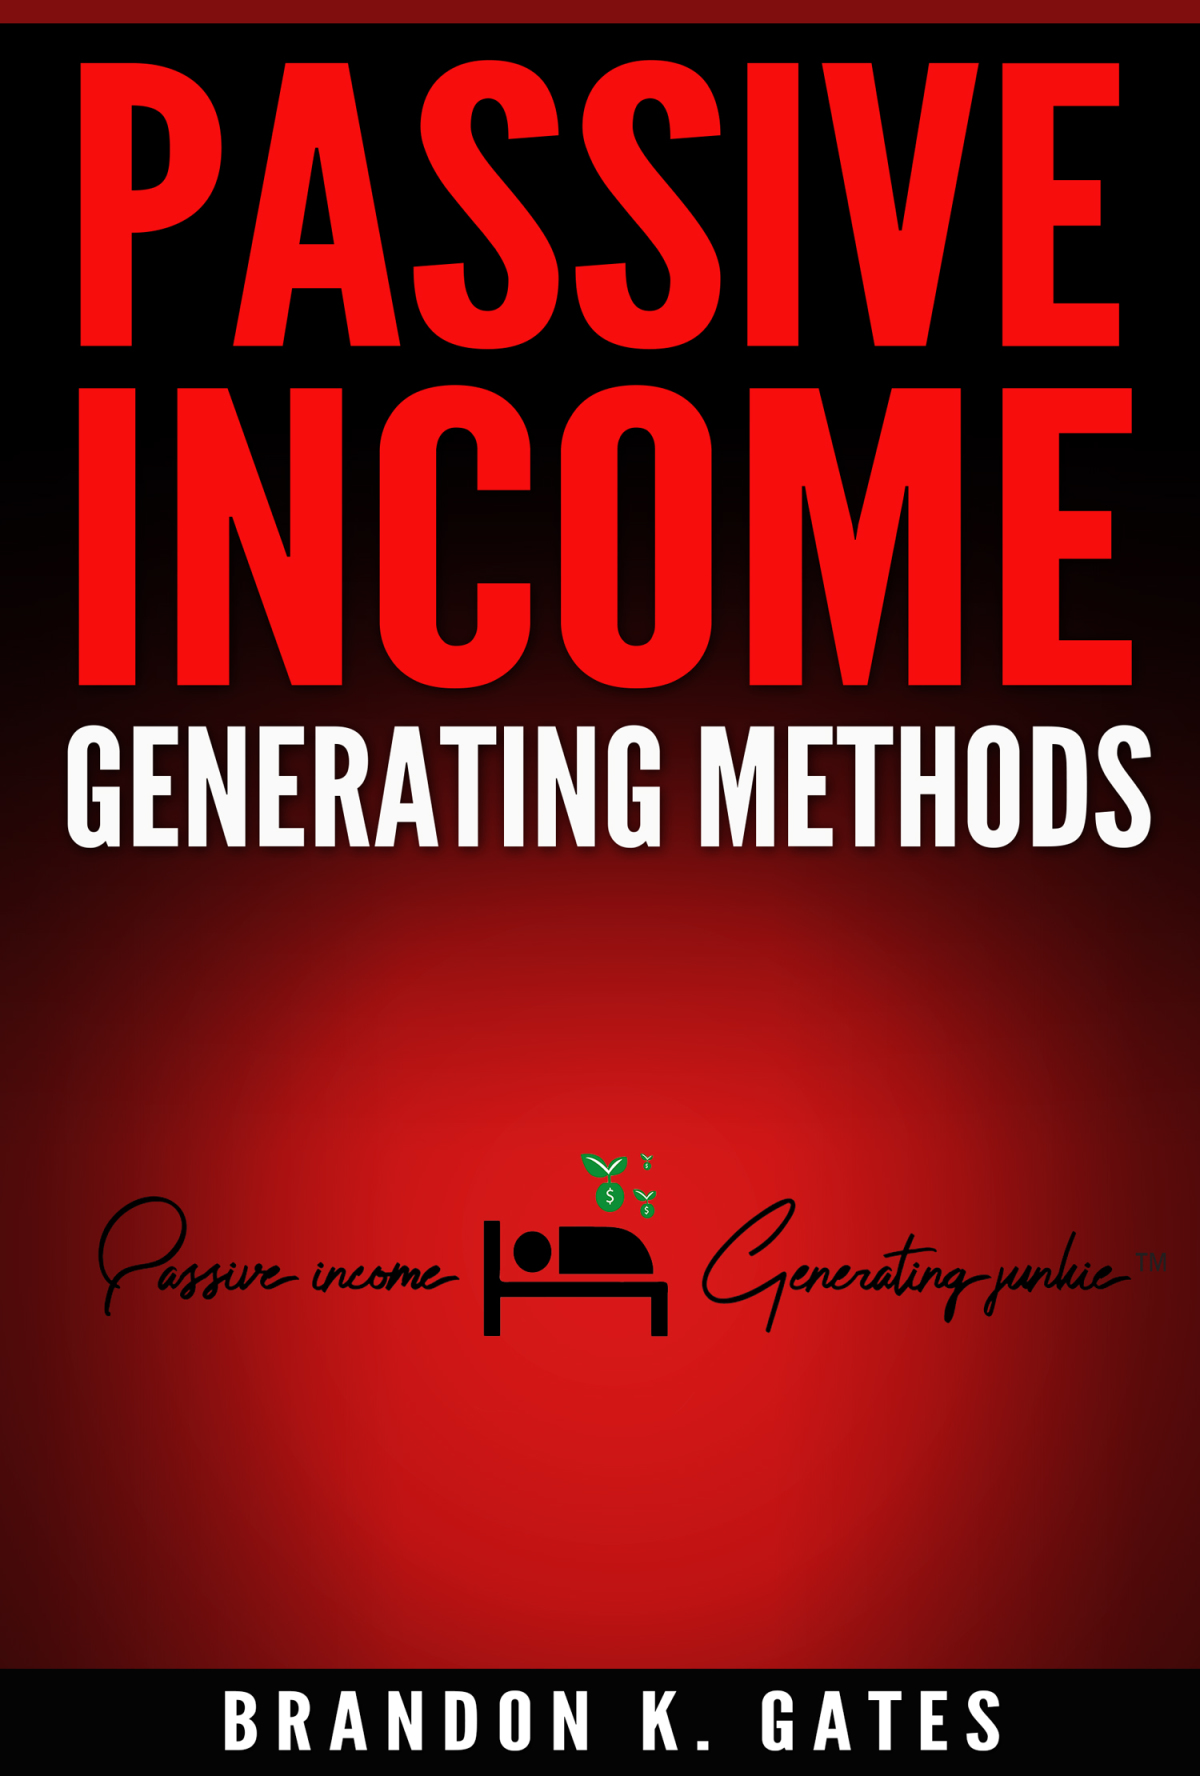 Passive Income Generating Methods Ebook Cover